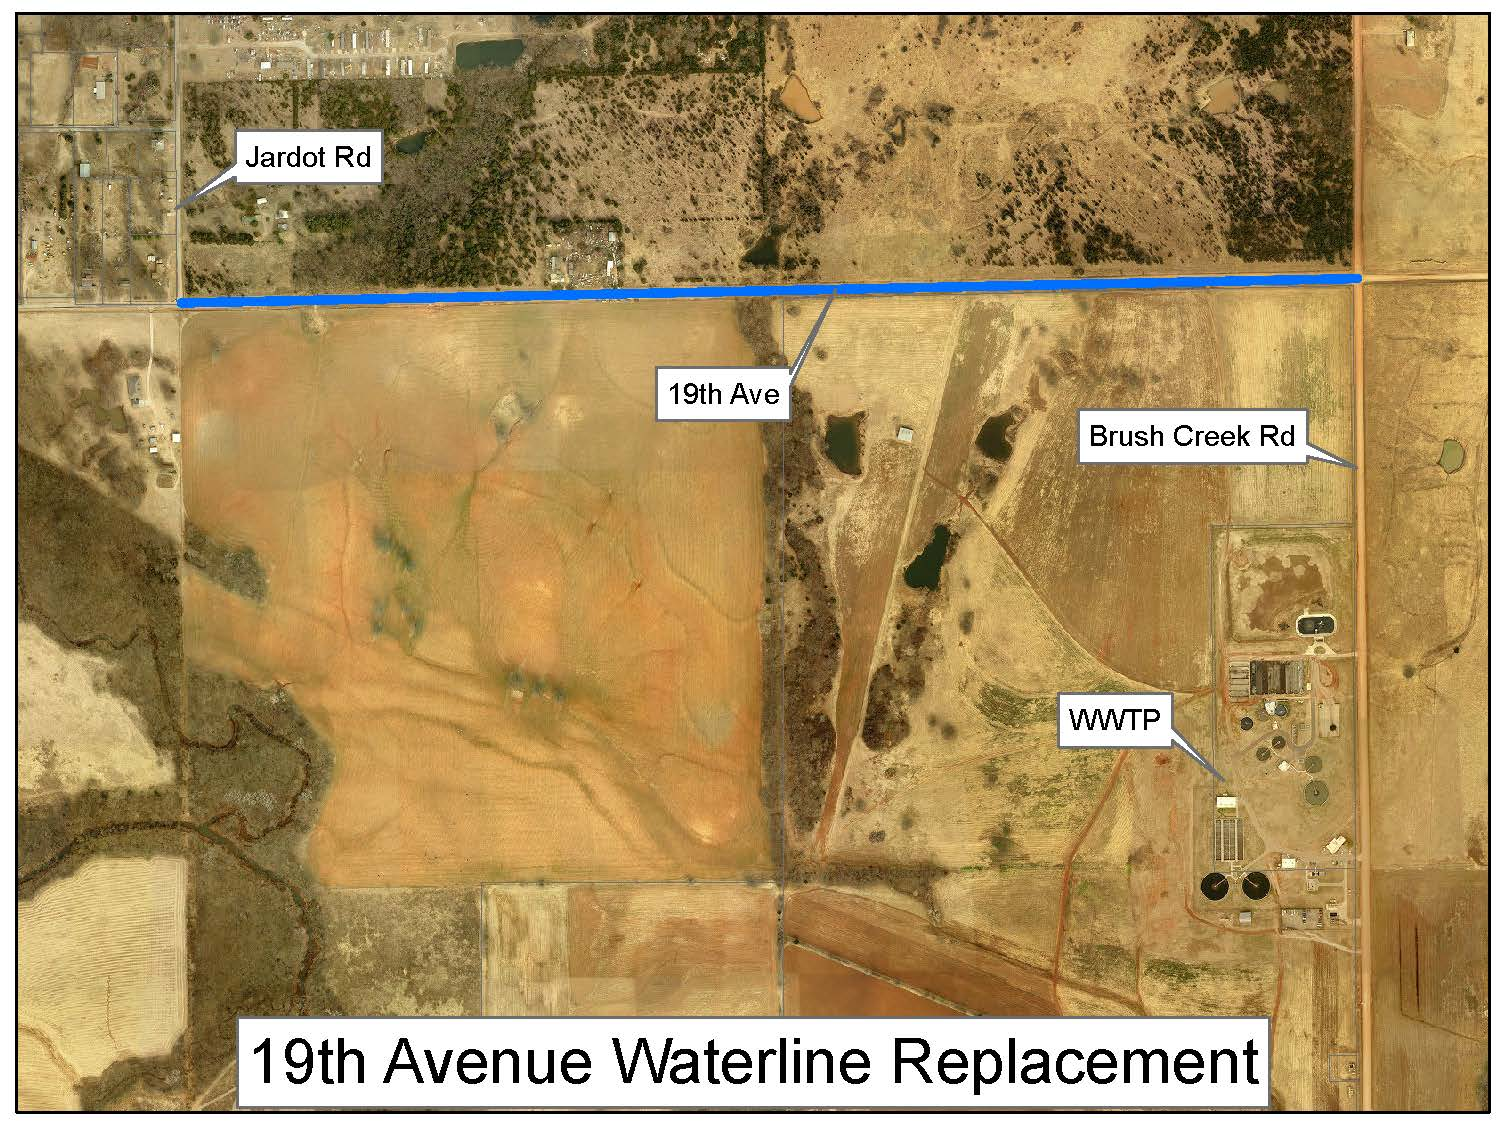 Proposed water line alignment on 19th Avenue